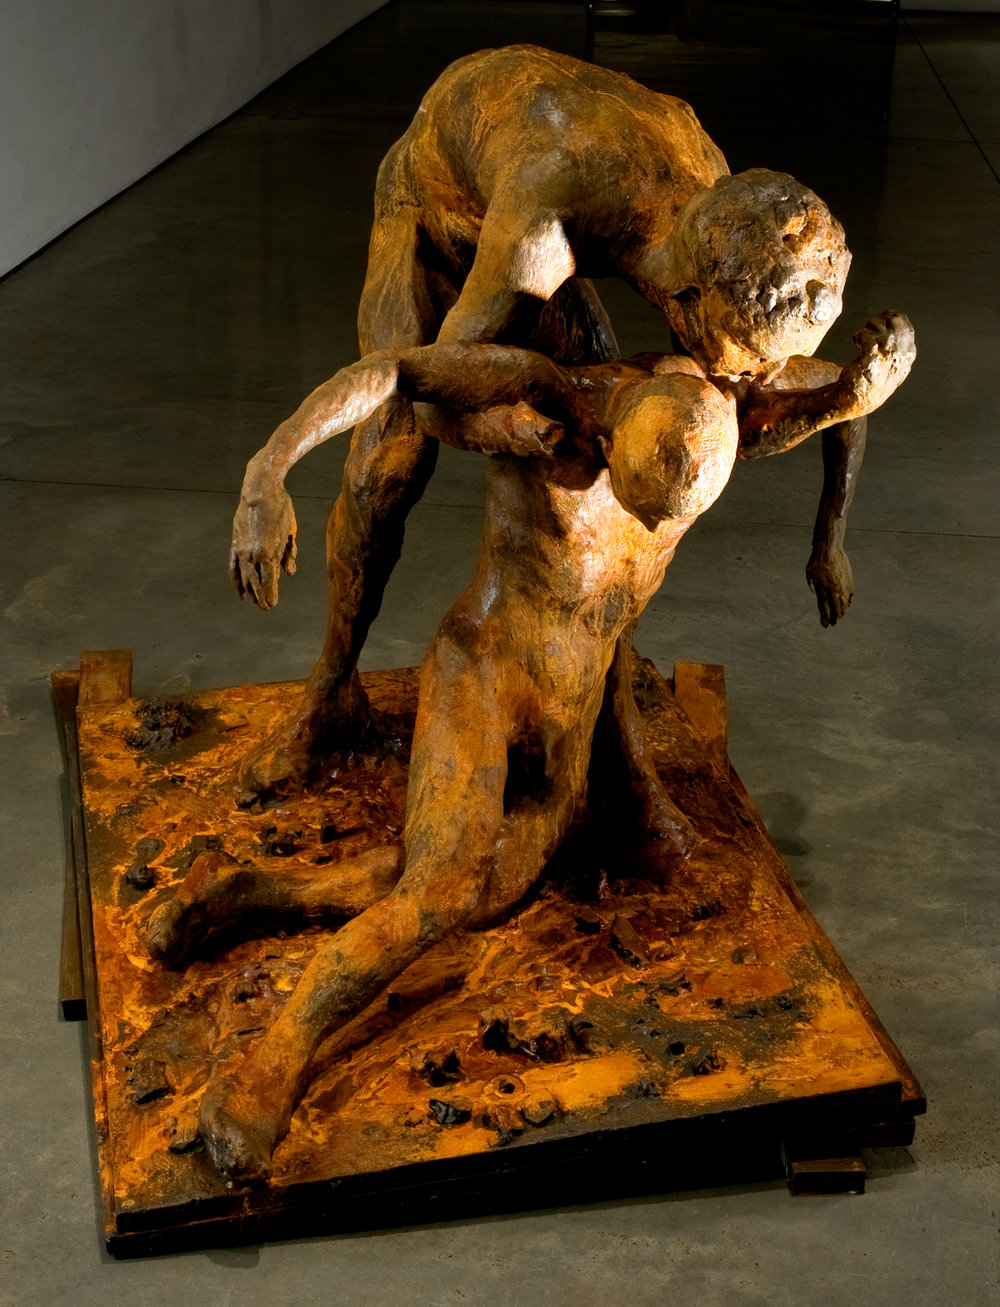 Ten Breaths: Samaritan, 2007.